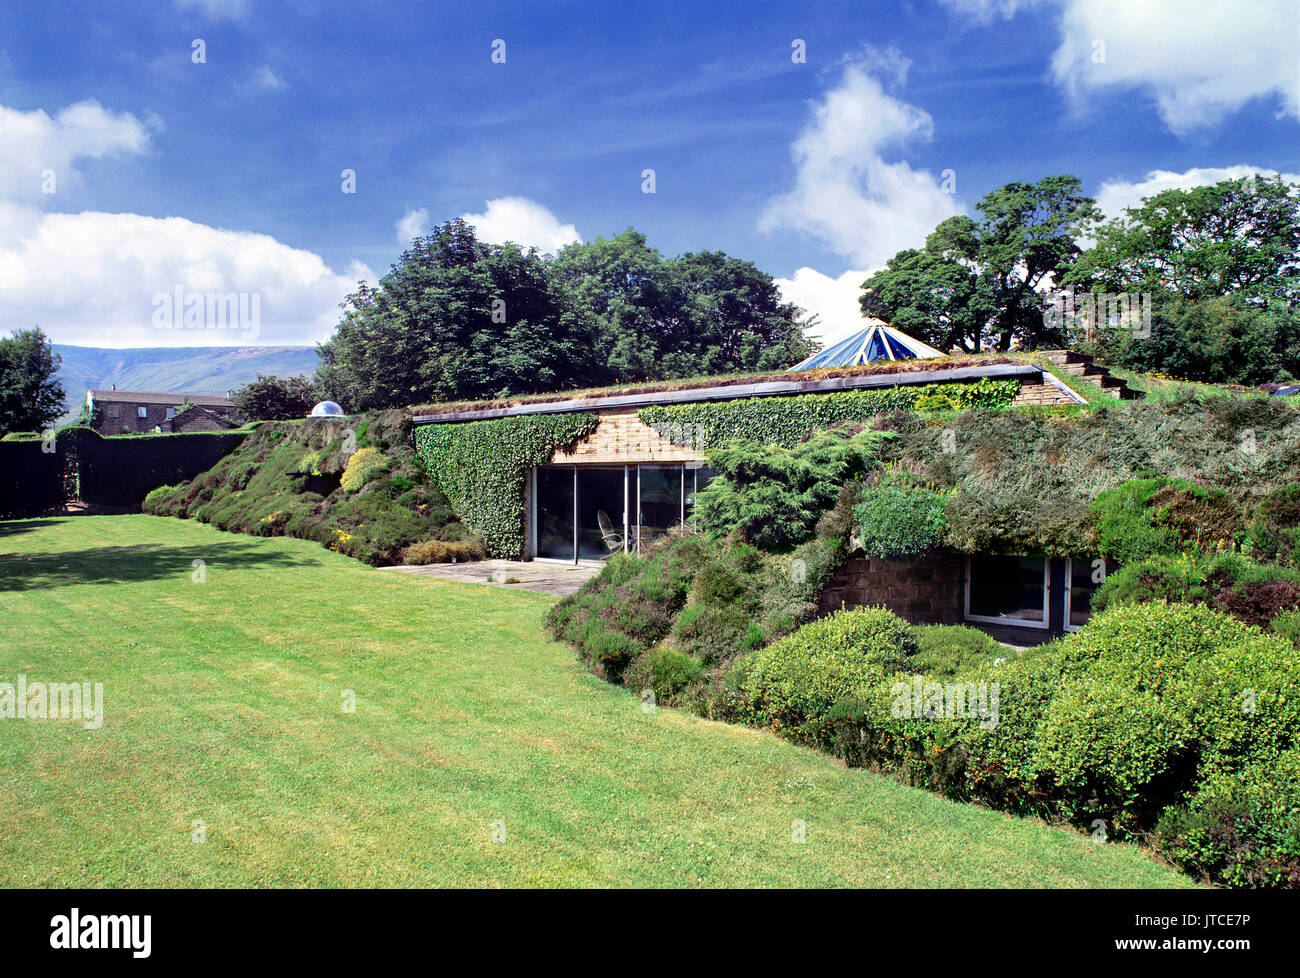 'Underhill': the first modern earth-sheltered house in Britain (1975) - the self-designed home of architect Arthur Quarmby, near Holmfirth, Yorkshire. - Stock Image